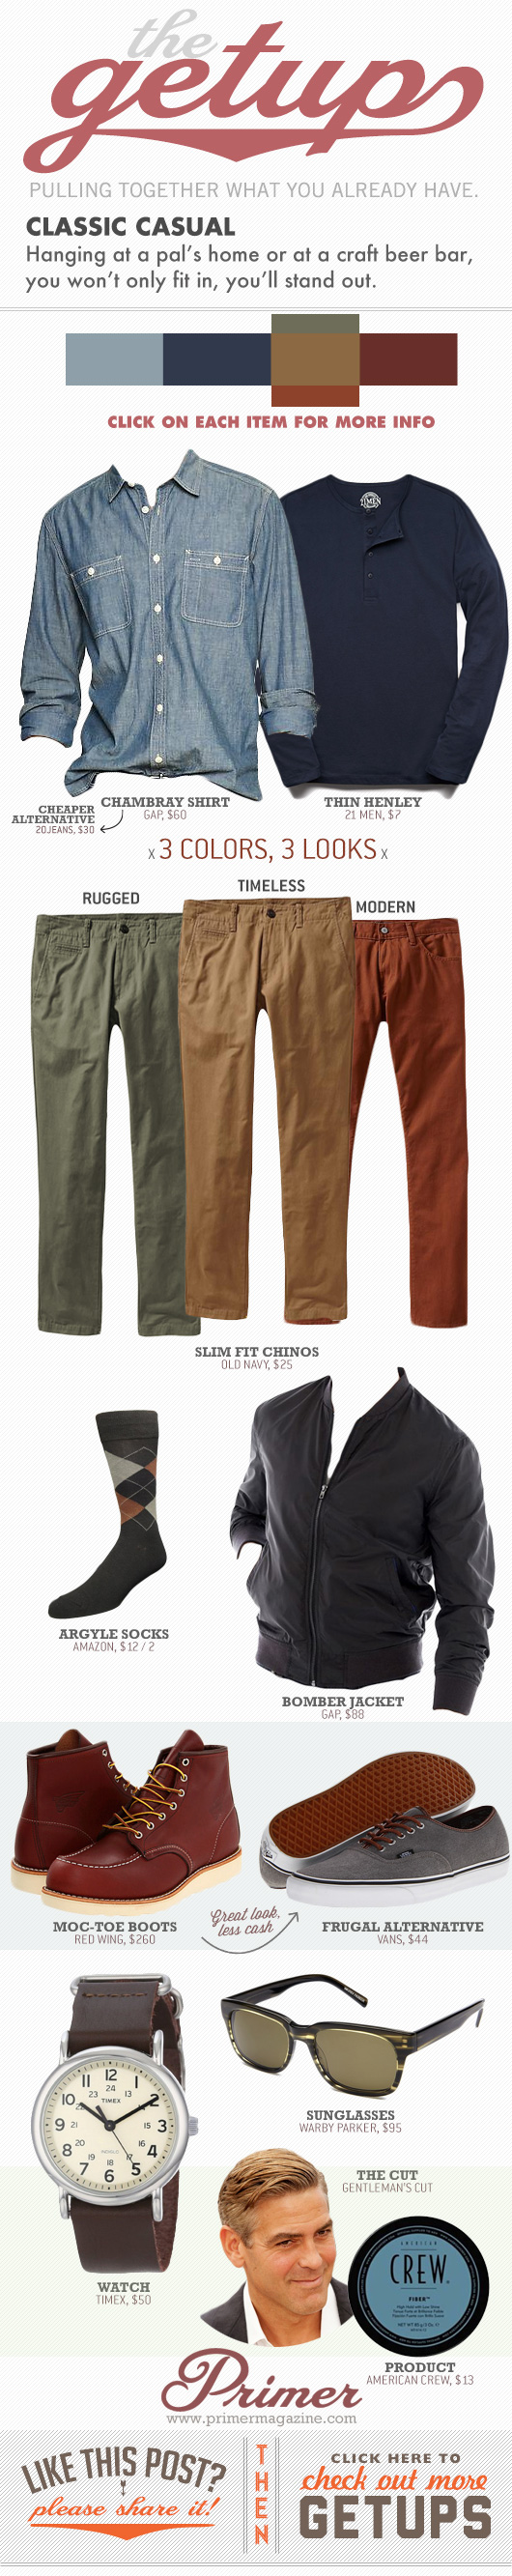 Classic casual Getup - Outfit with 3 colors for pants, green khaki, and orange